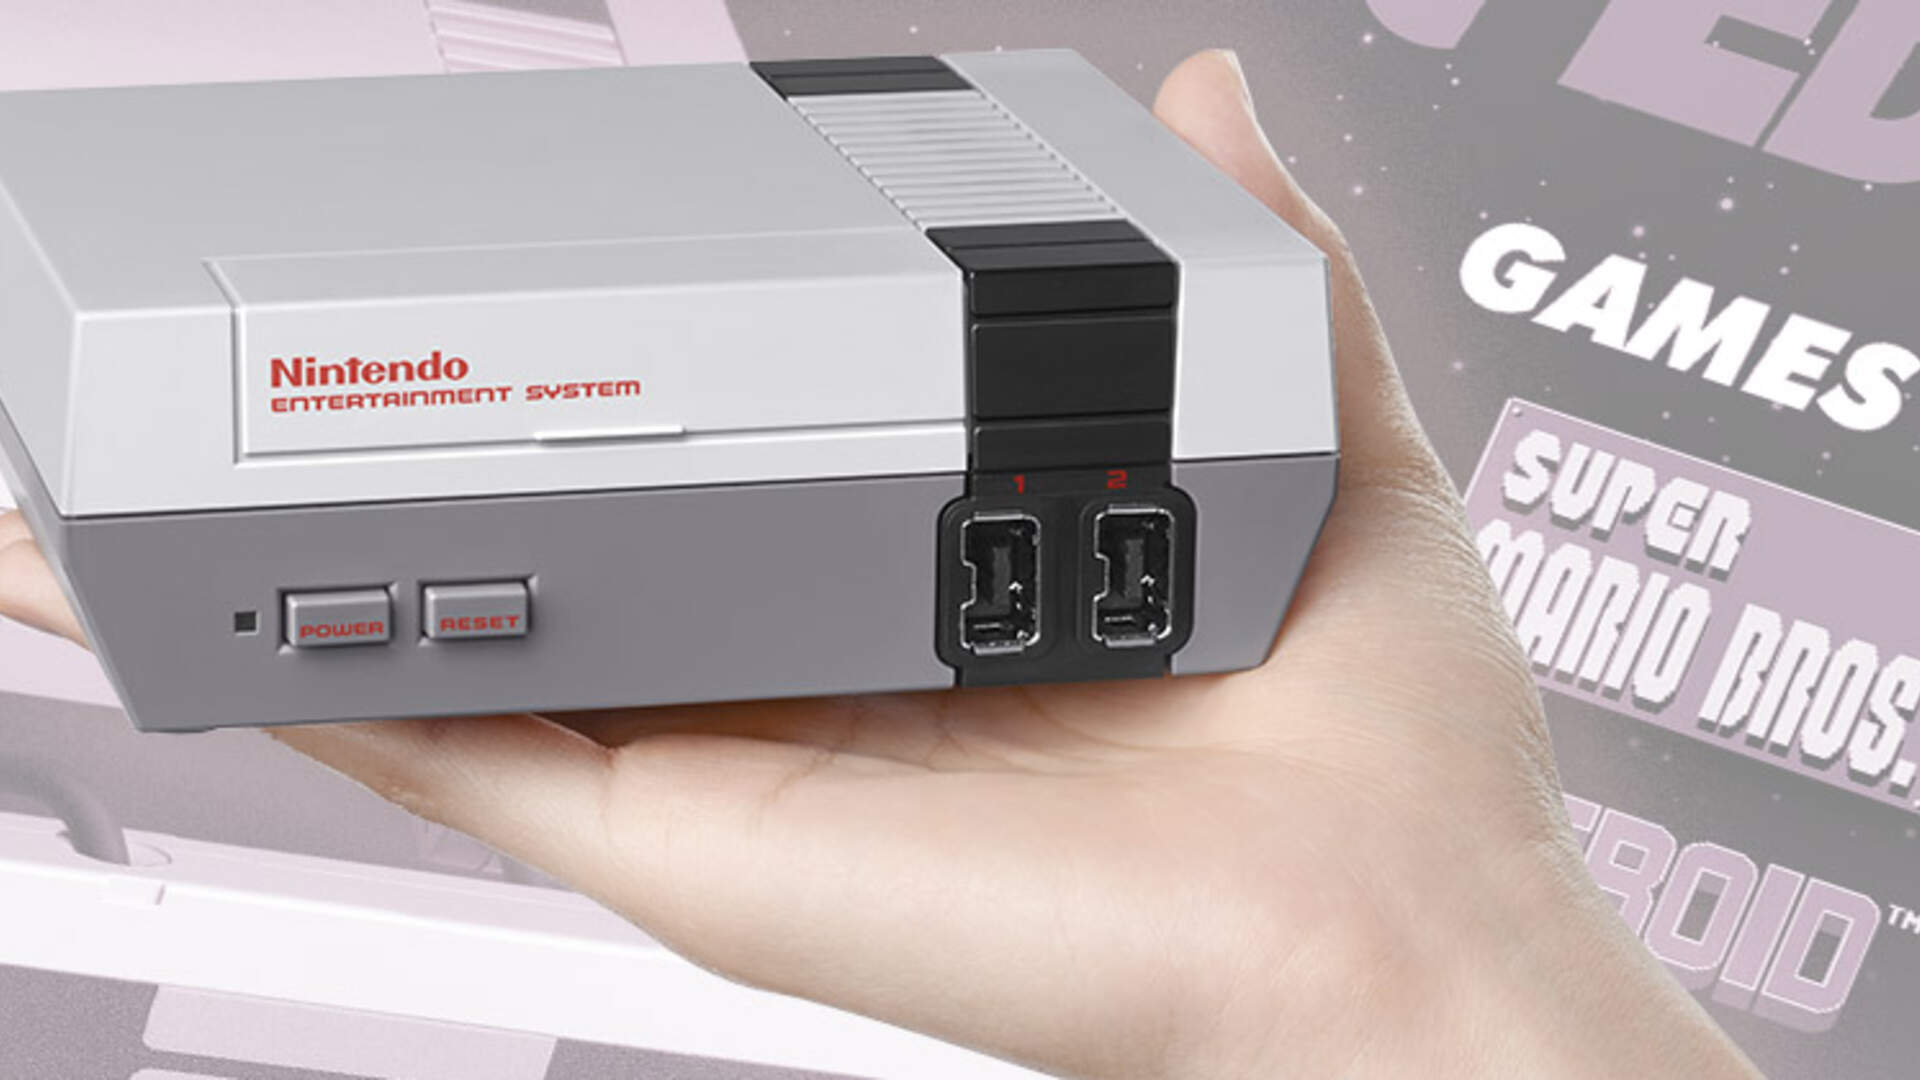 Now You Re Playing With Teeny Tiny Power Nintendo Announces Retro Nes Console Usgamer